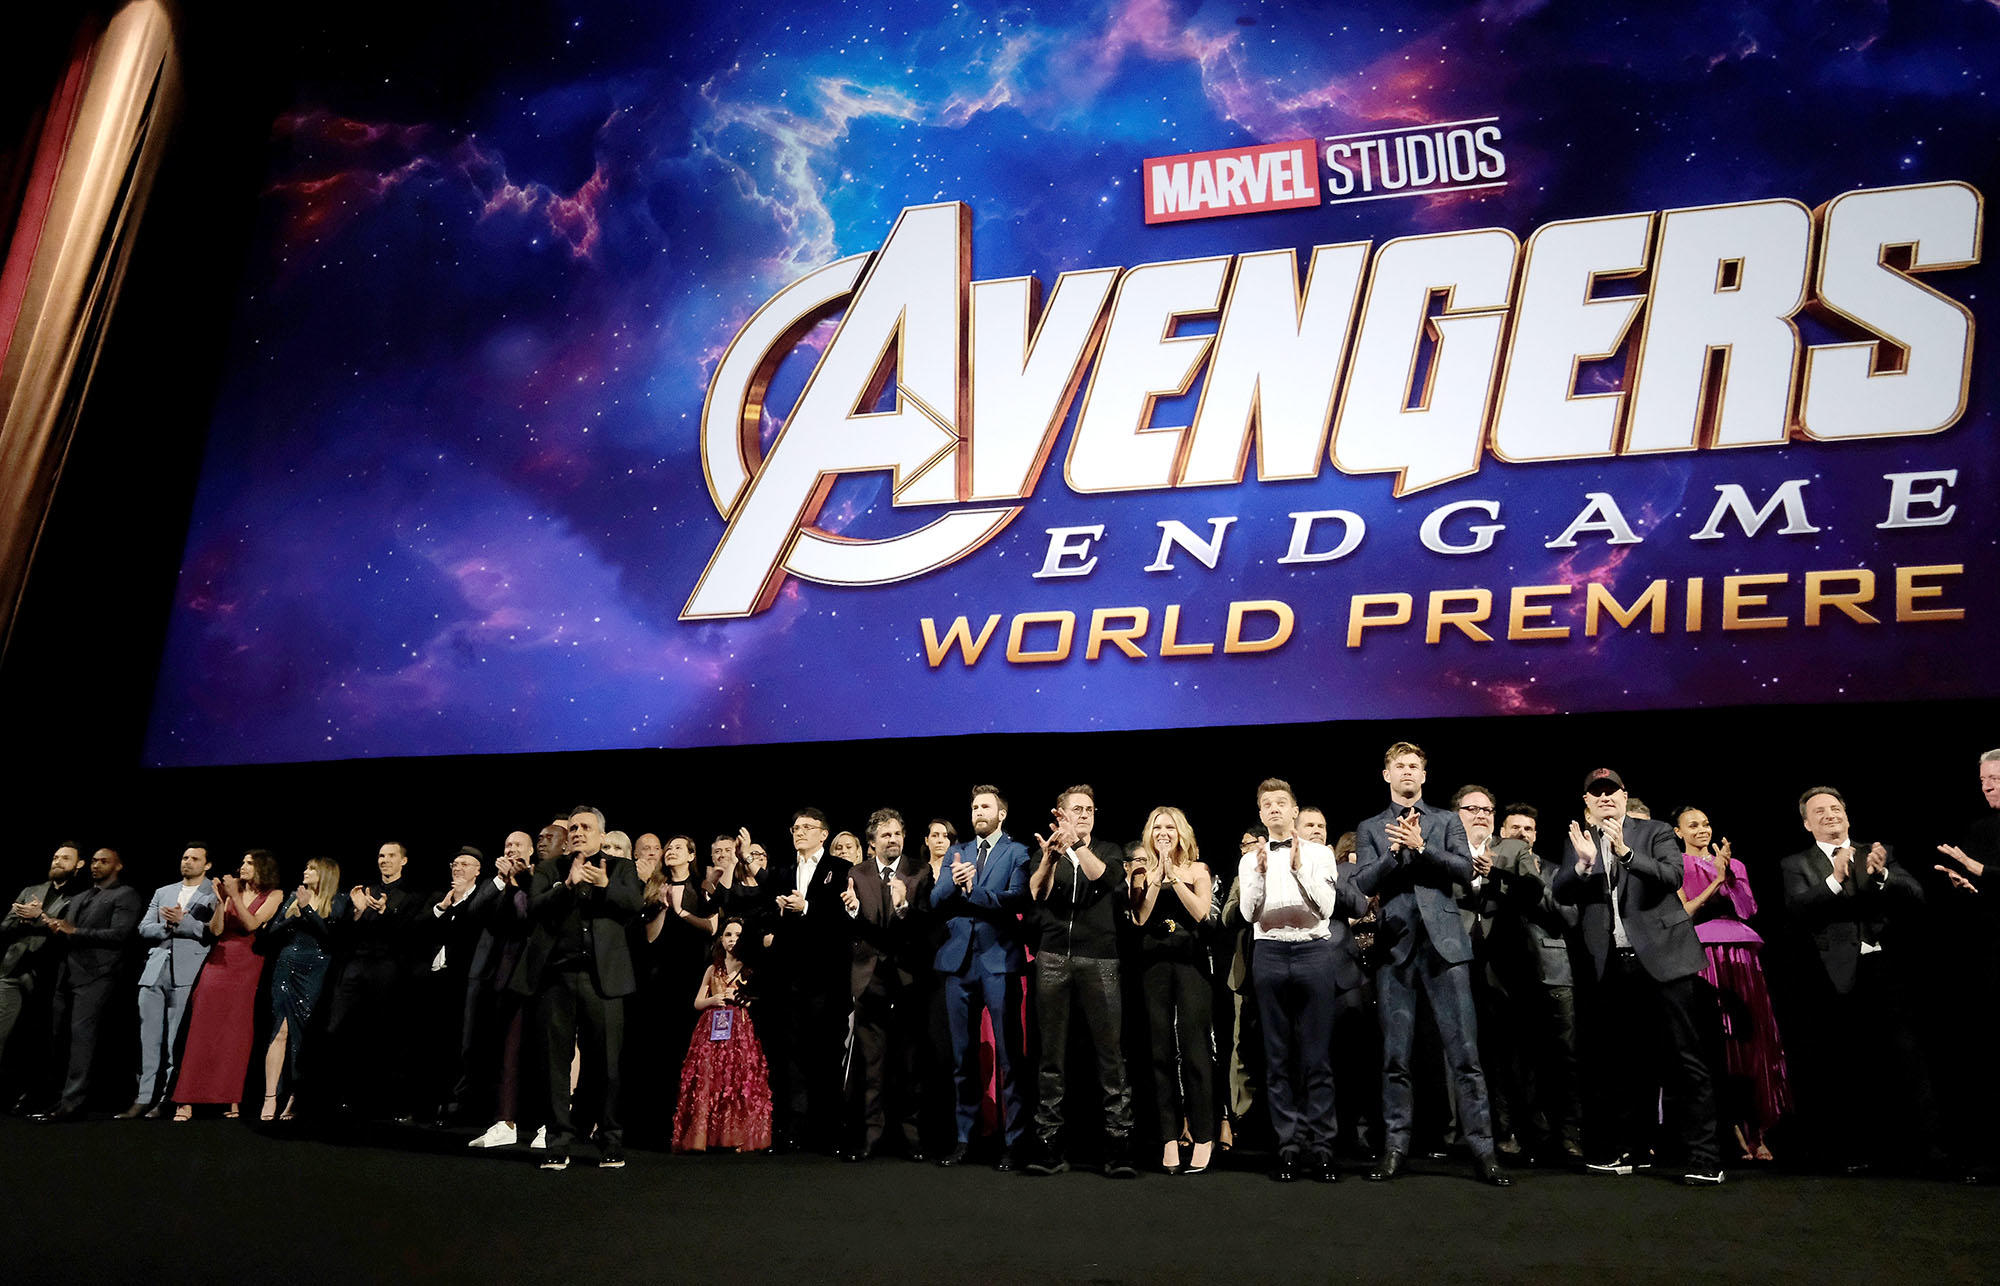 'Avengers: Endgame' cast and crew